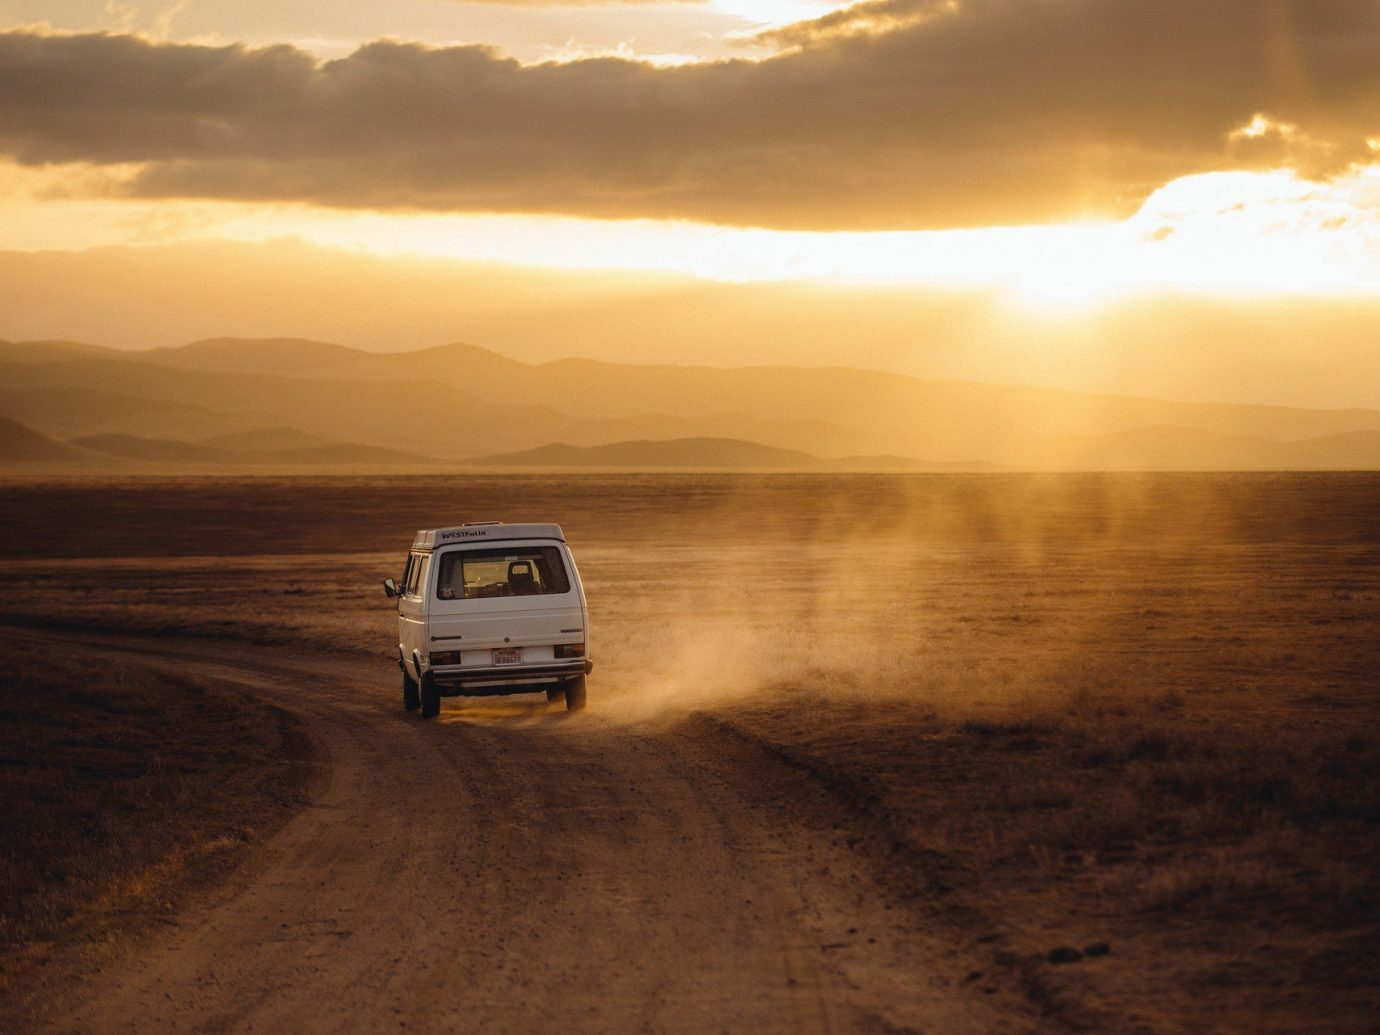 calm car flare glare glow golden hour isolation majestic Mountains orange orange sky remote road roadtrip serene Sunset Travel Tips outdoor sky atmospheric phenomenon horizon natural environment sunrise Beach morning dawn cloud evening landscape dusk Sea sunlight Desert Coast sandy